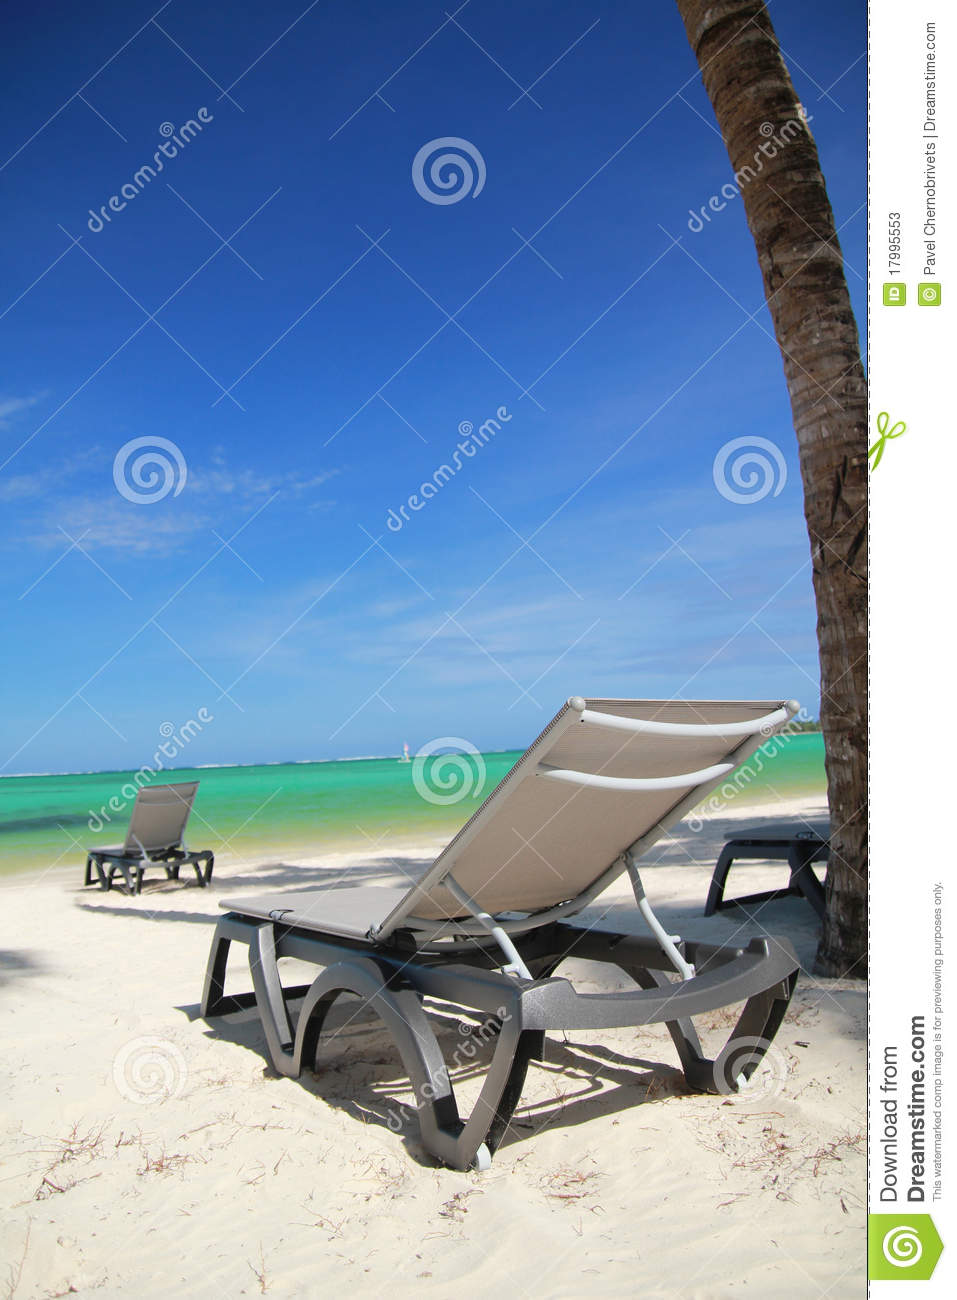 Chaise longue on beach stock photos image 17995553 for Beach chaise longue